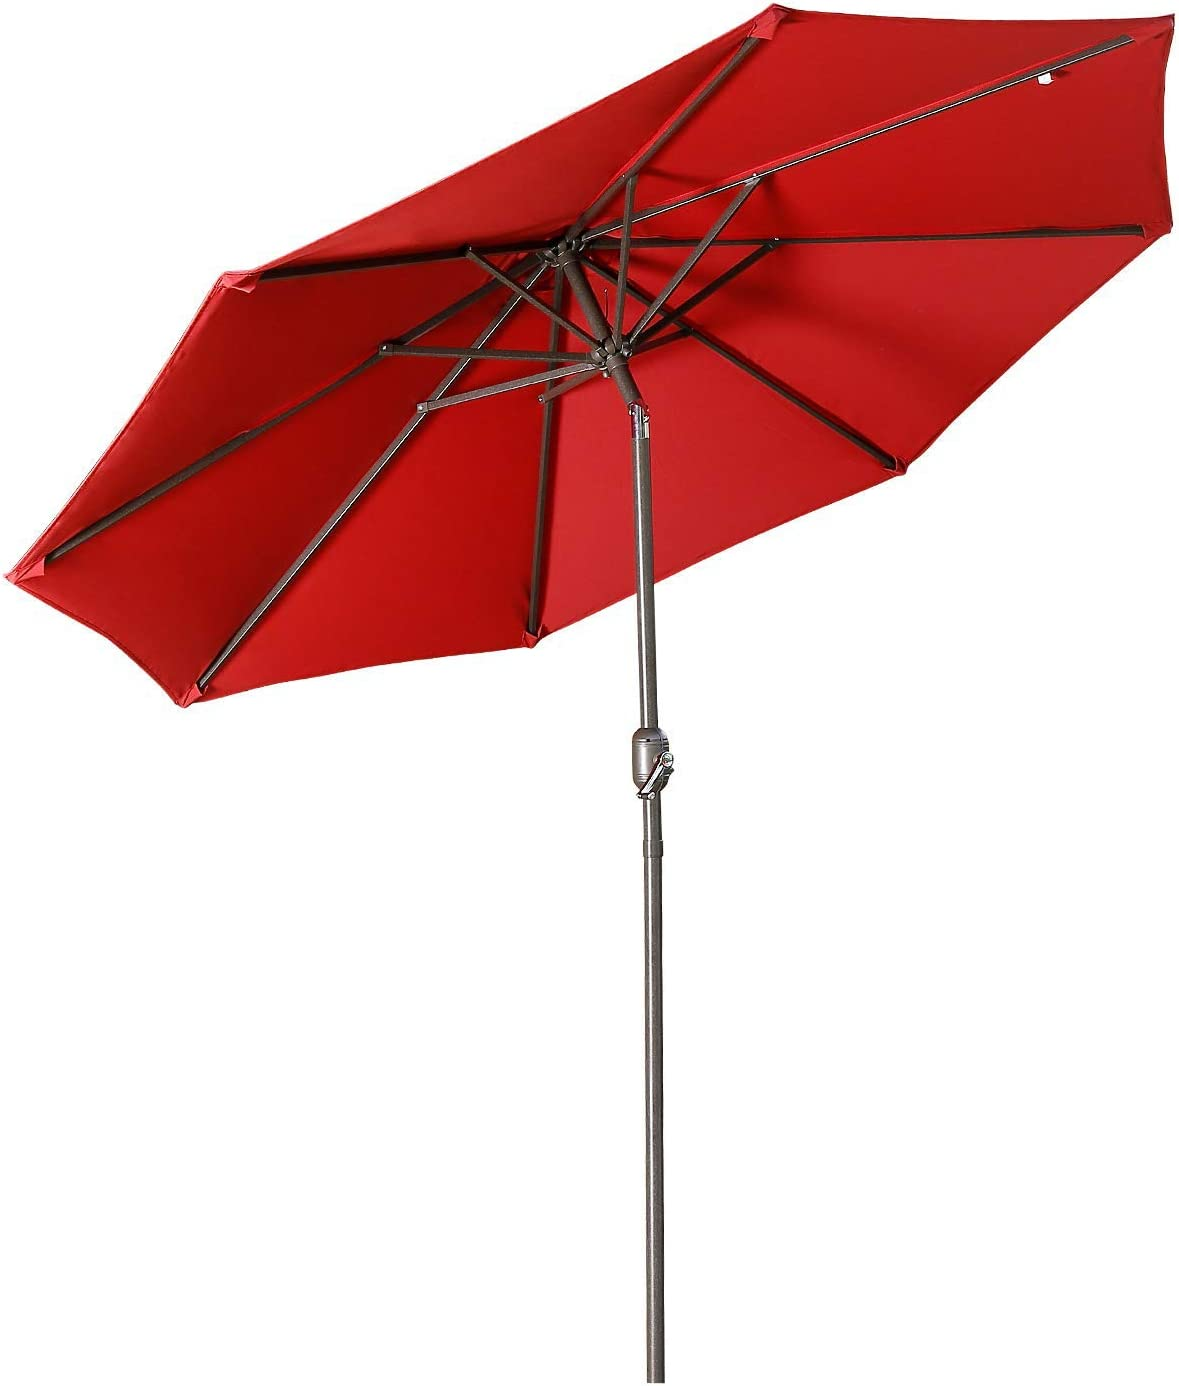 Aok Garden 9 ft Patio Umbrella Outdoor Table Umbrella with Push Button Tilt and Crank 8 Sturdy Ribs Fade Resistant for Patio Table, Market, Deck, Wine Red